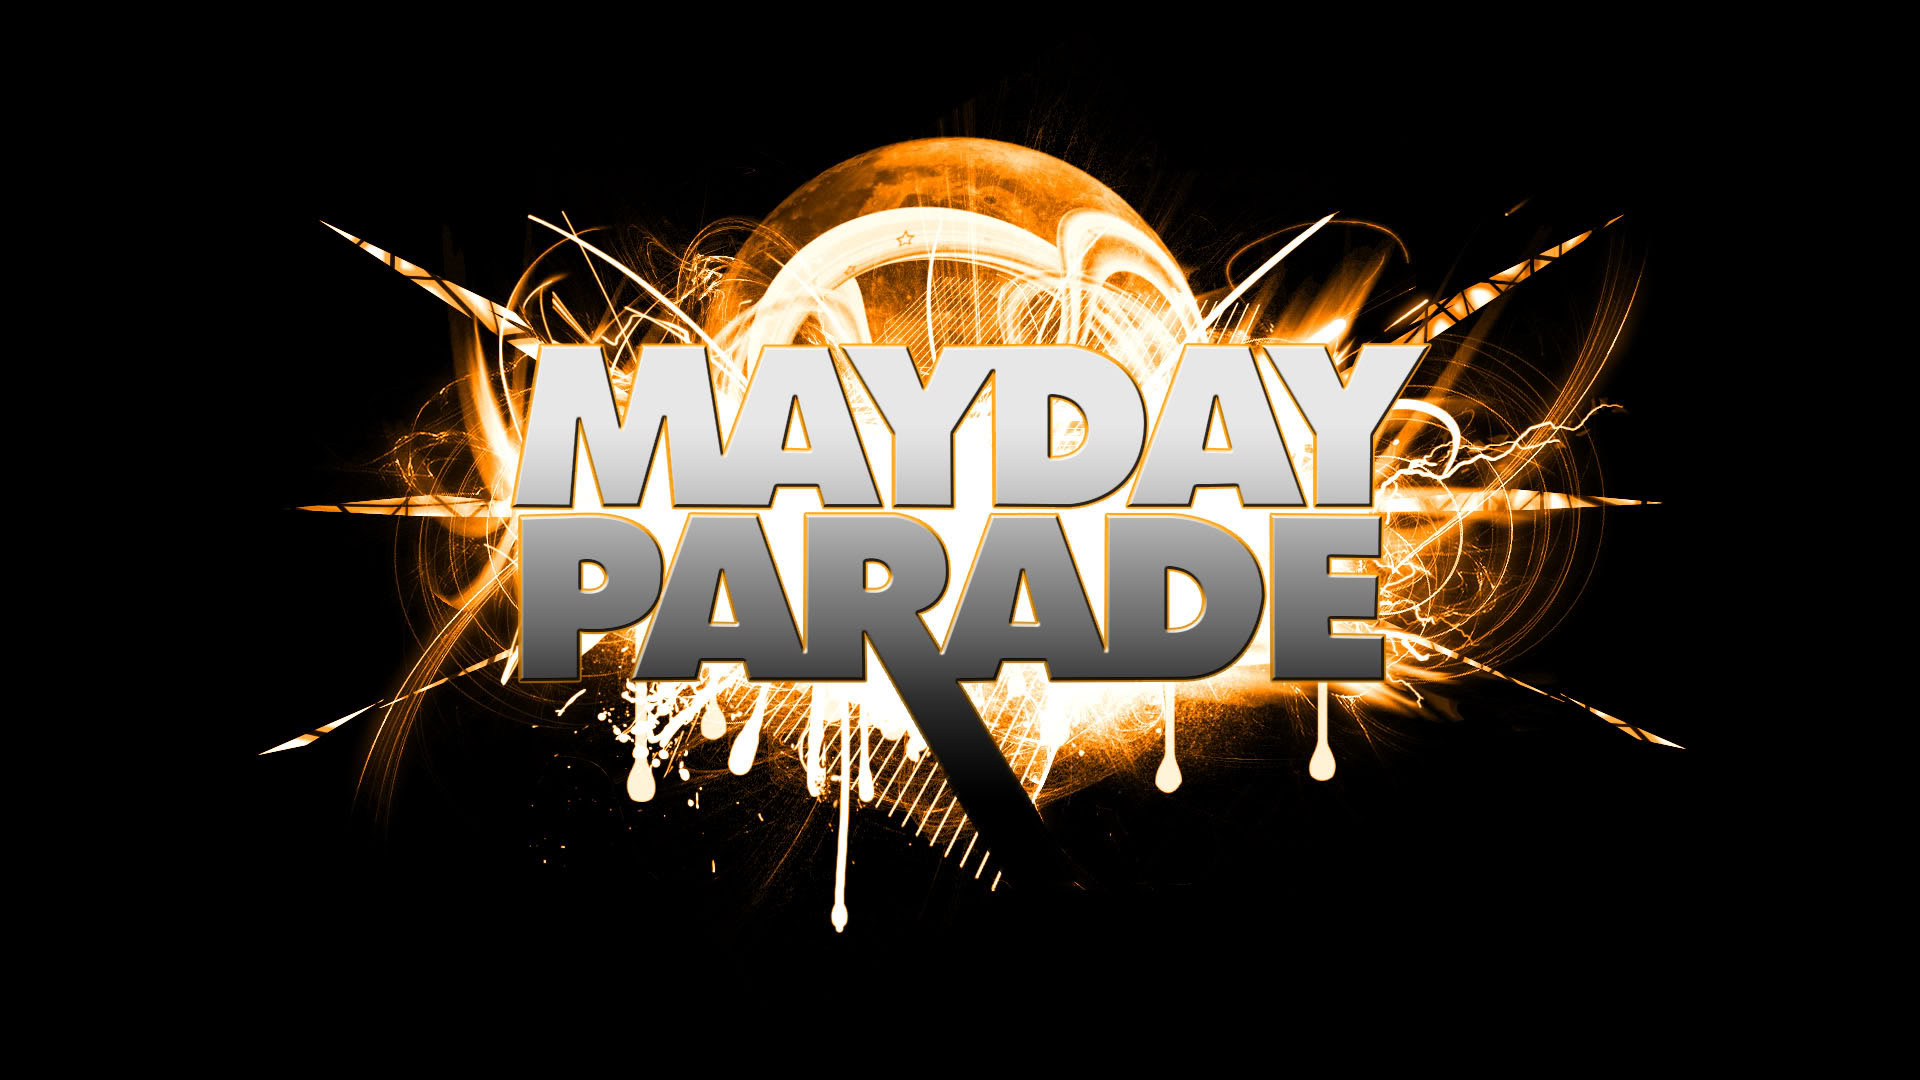 Mayday Parade Wallpapers Group (60+)